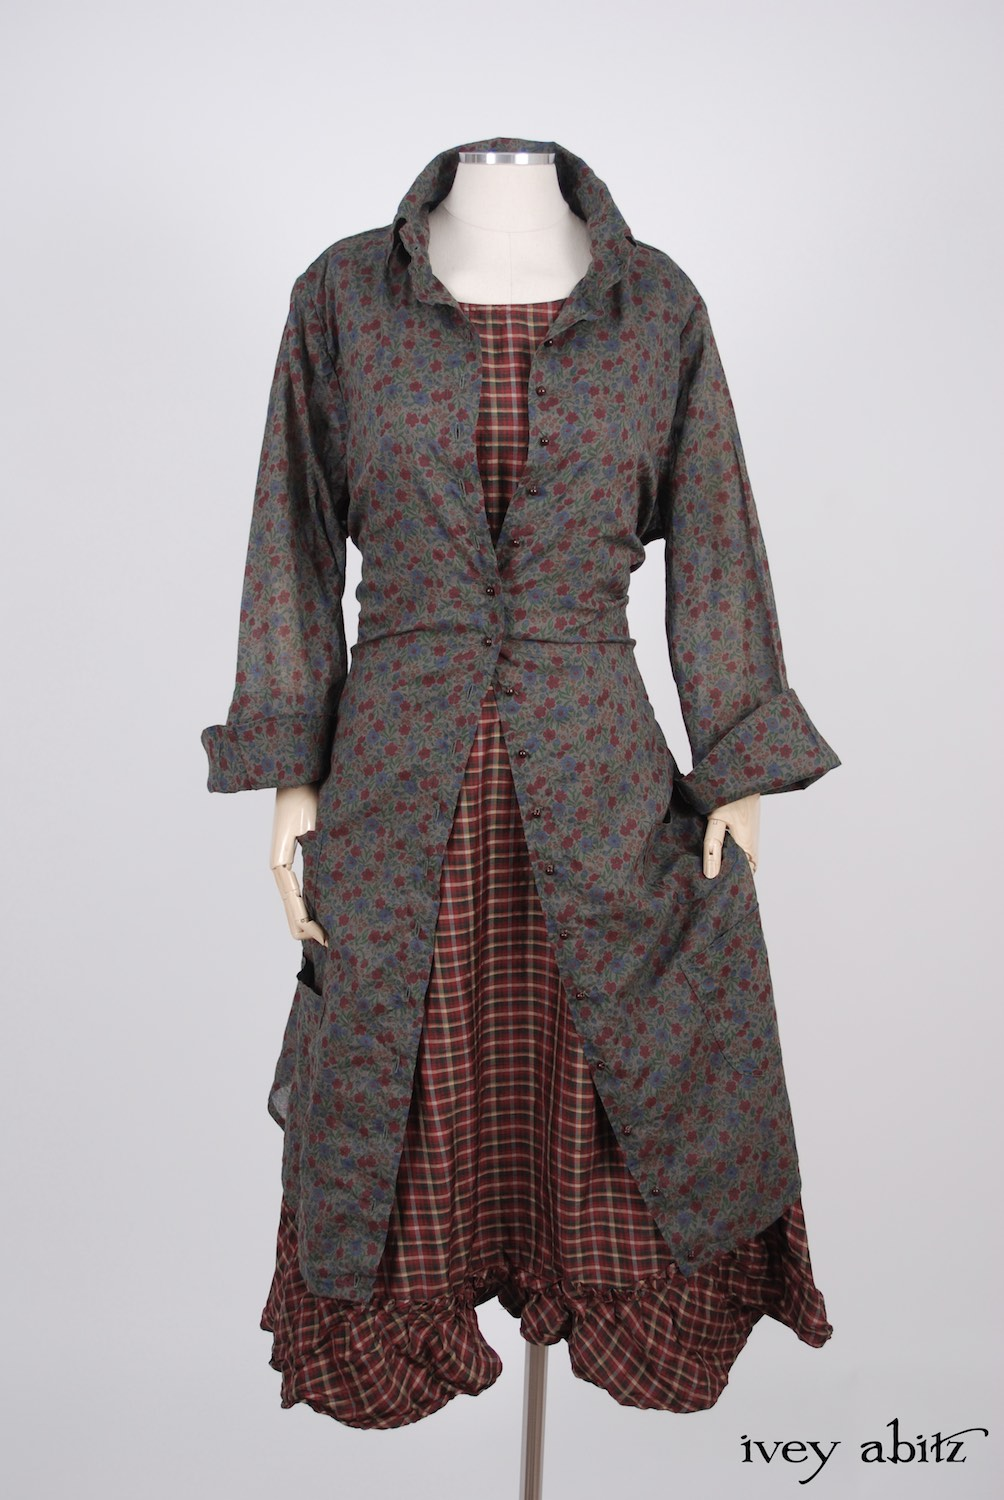 Ivey Abitz - Phinneus Coat Dress in Peony Meadow Cotton Voile  - Tilbrook Frock in Peony Washed Plaid Silk, High Water Length